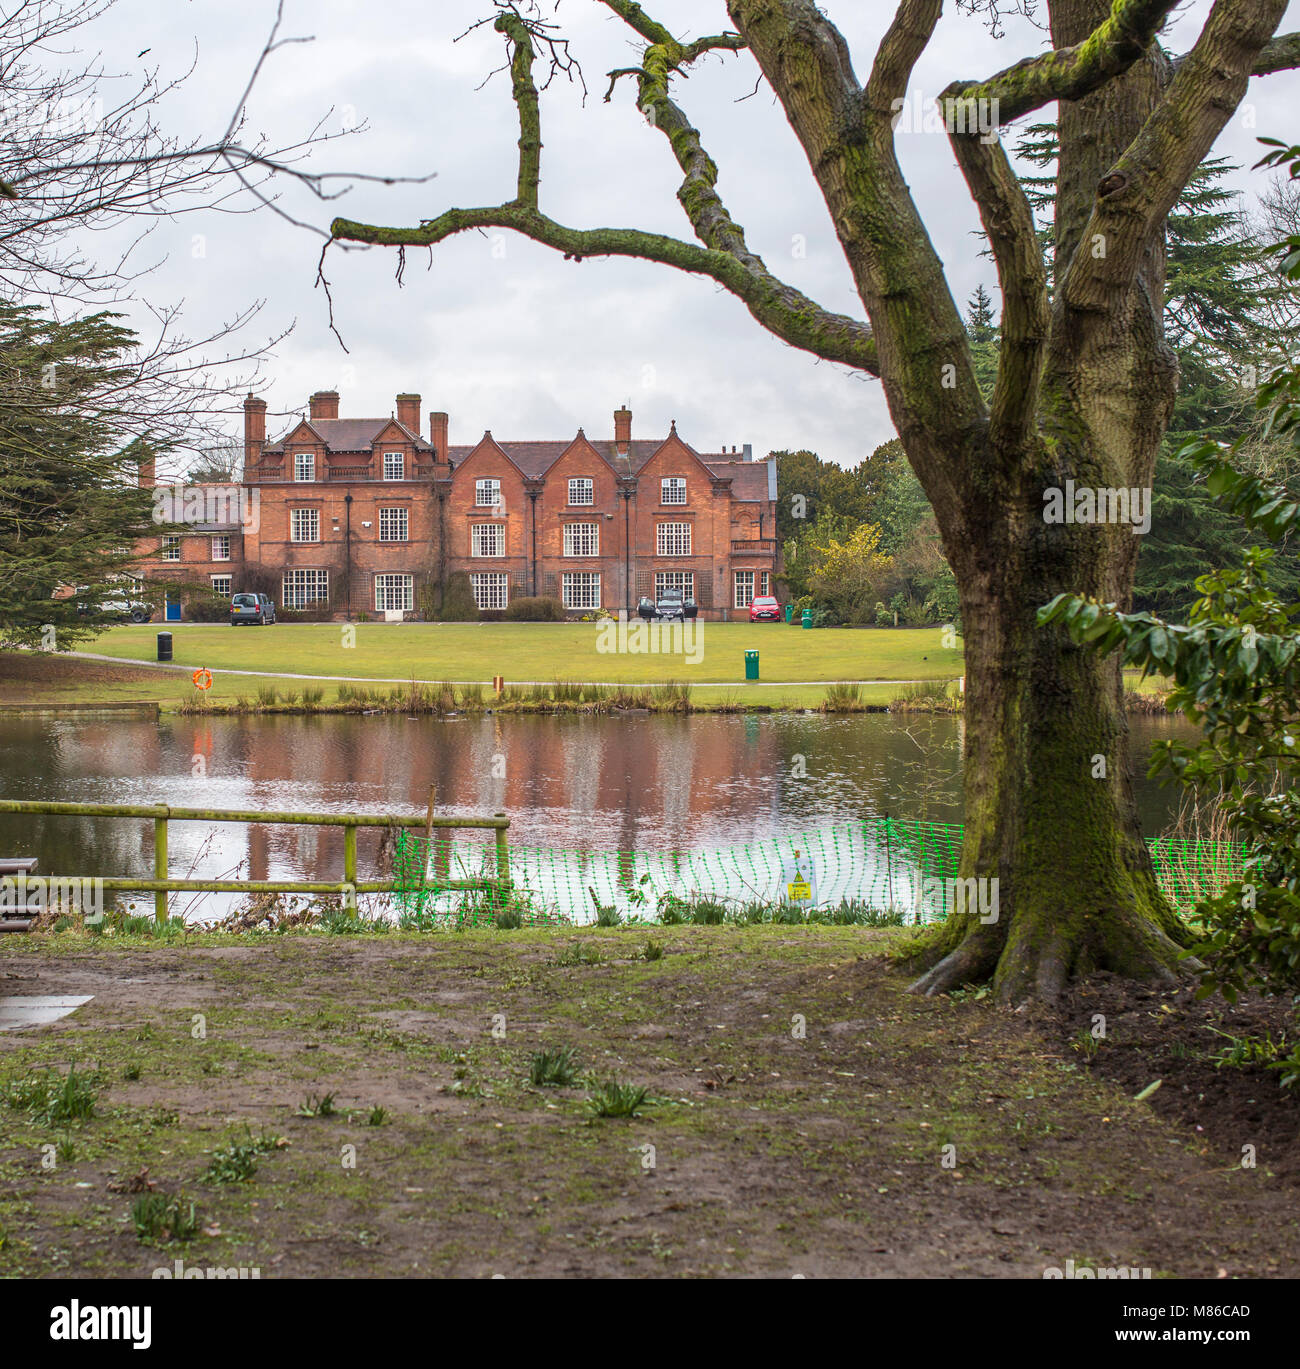 The buildings of the Reaseheath Agricultural College new nantwich in Cheshire viewed across the lake - Stock Image